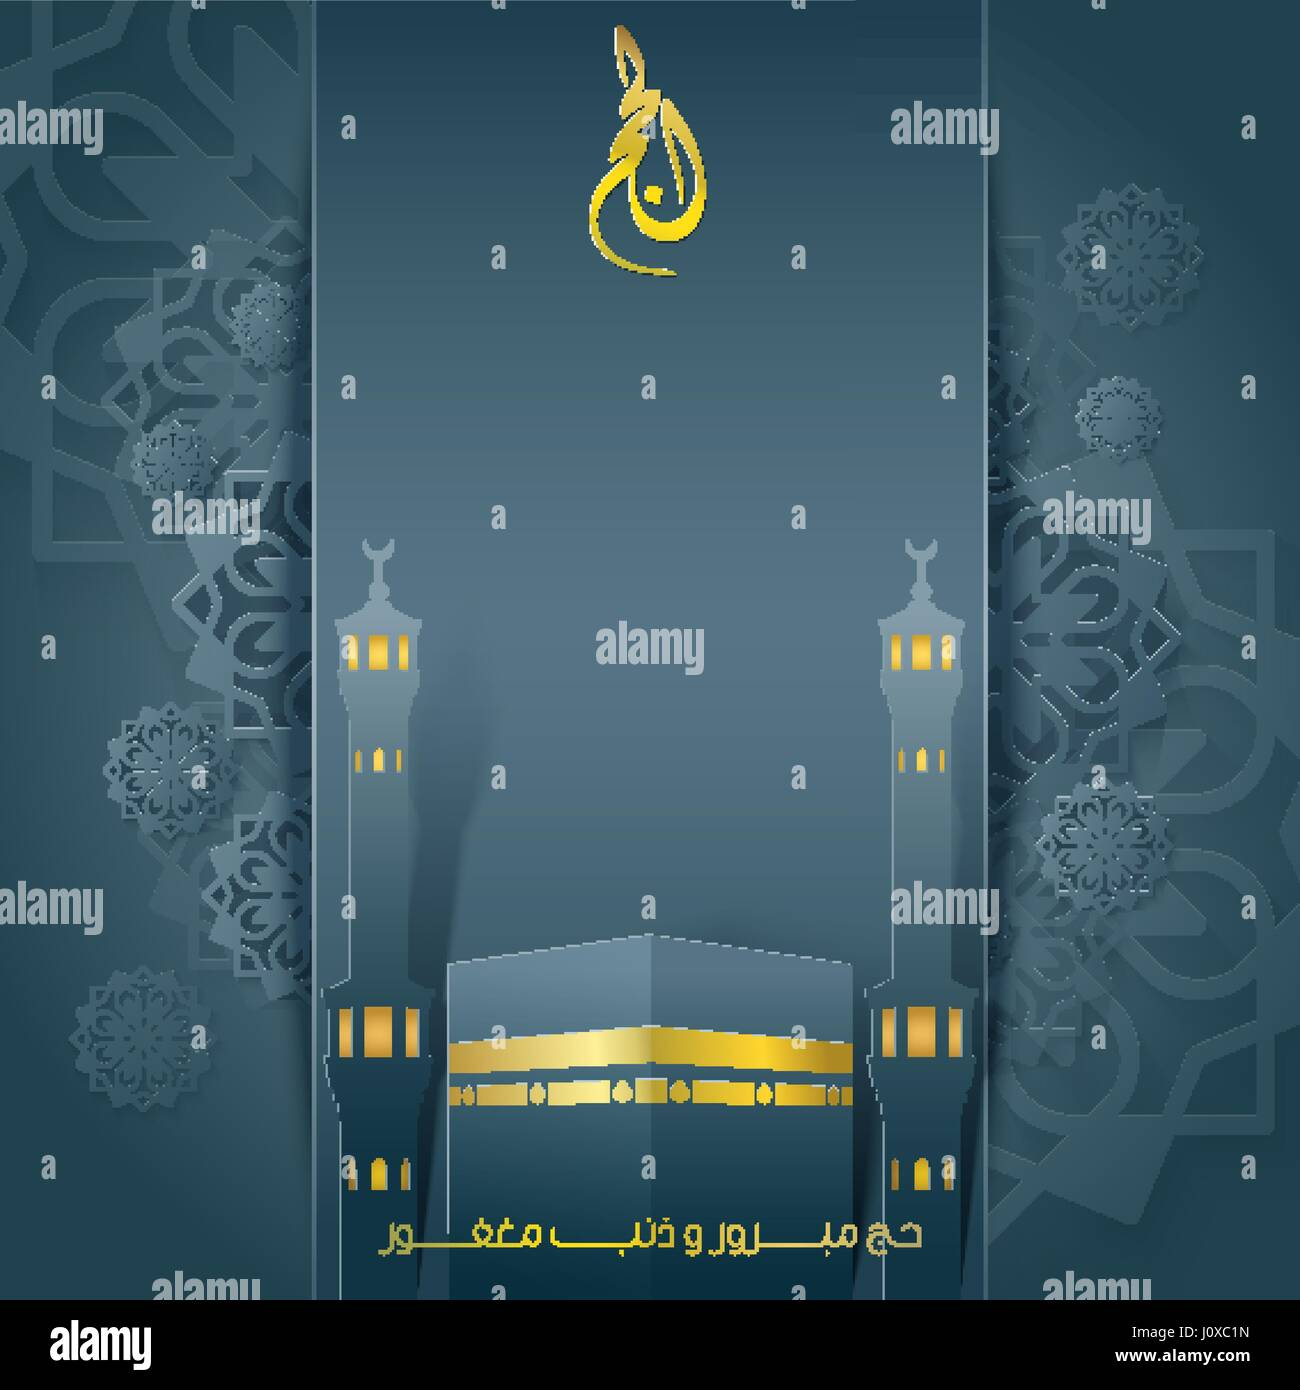 Umrah Banner: Hajj Greeting Card Background With Kaaba Haram Mosque And